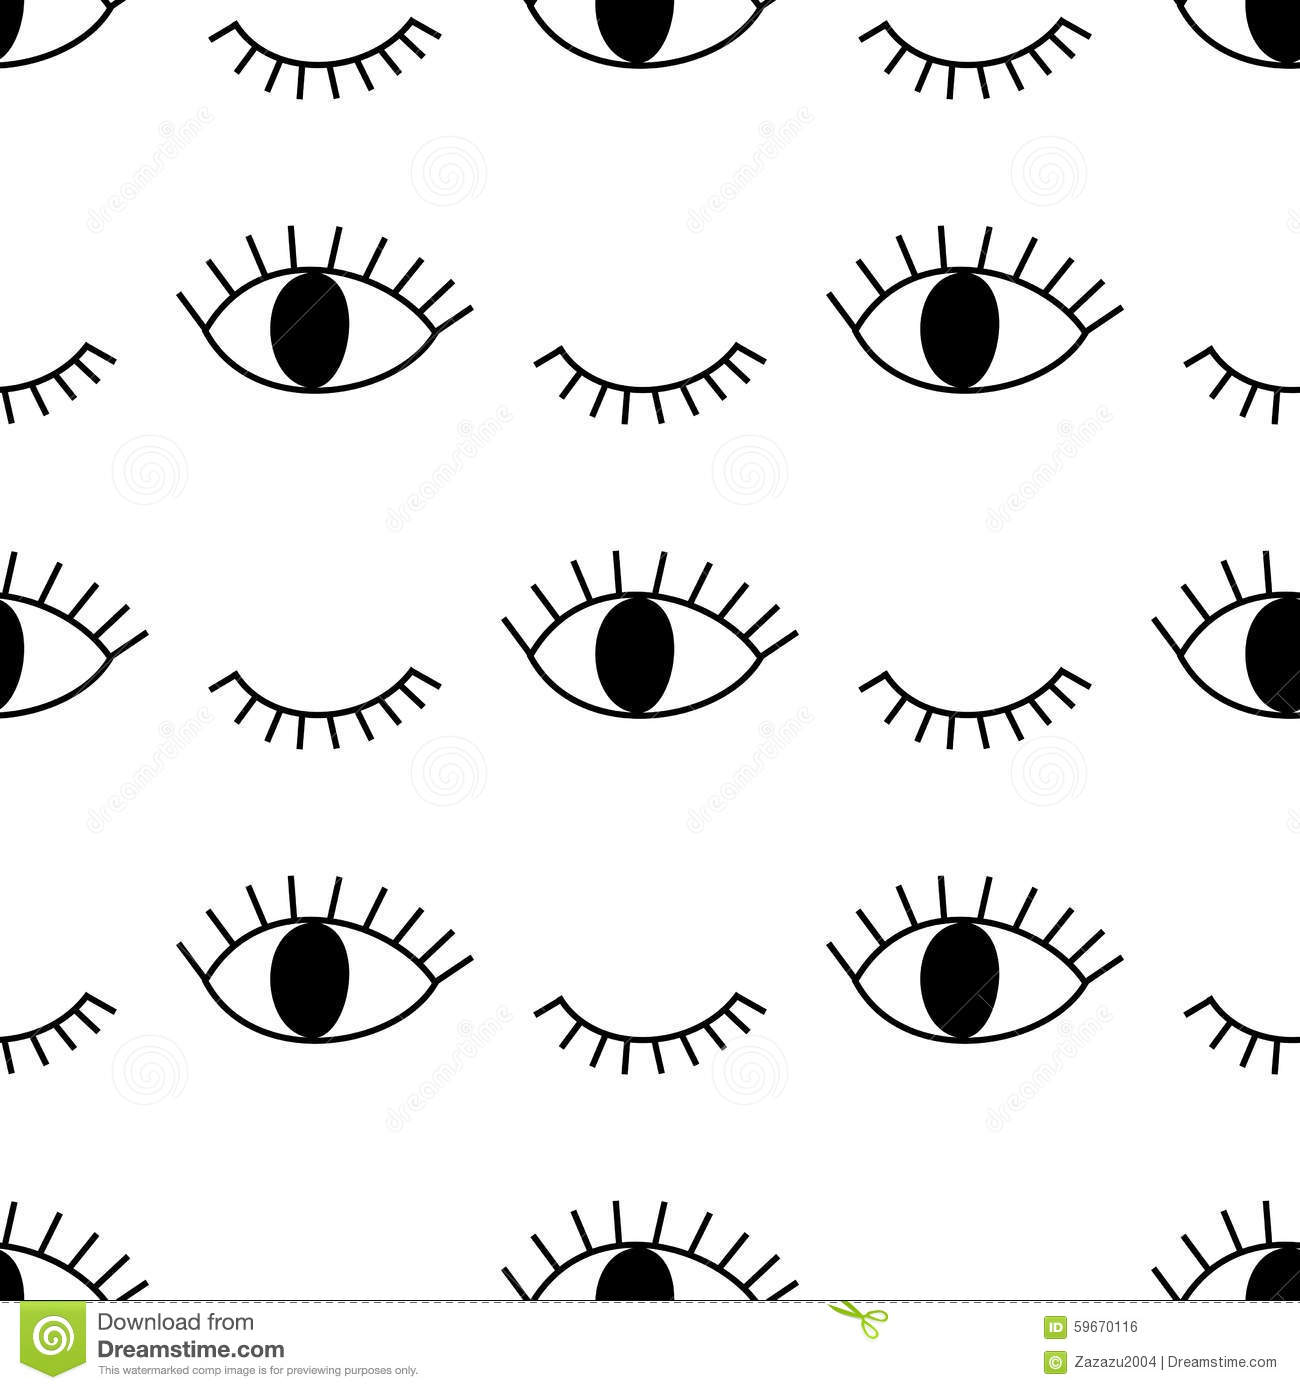 Black and white abstract pattern with open and winking eyes stock download black and white abstract pattern with open and winking eyes stock vector illustration ccuart Images